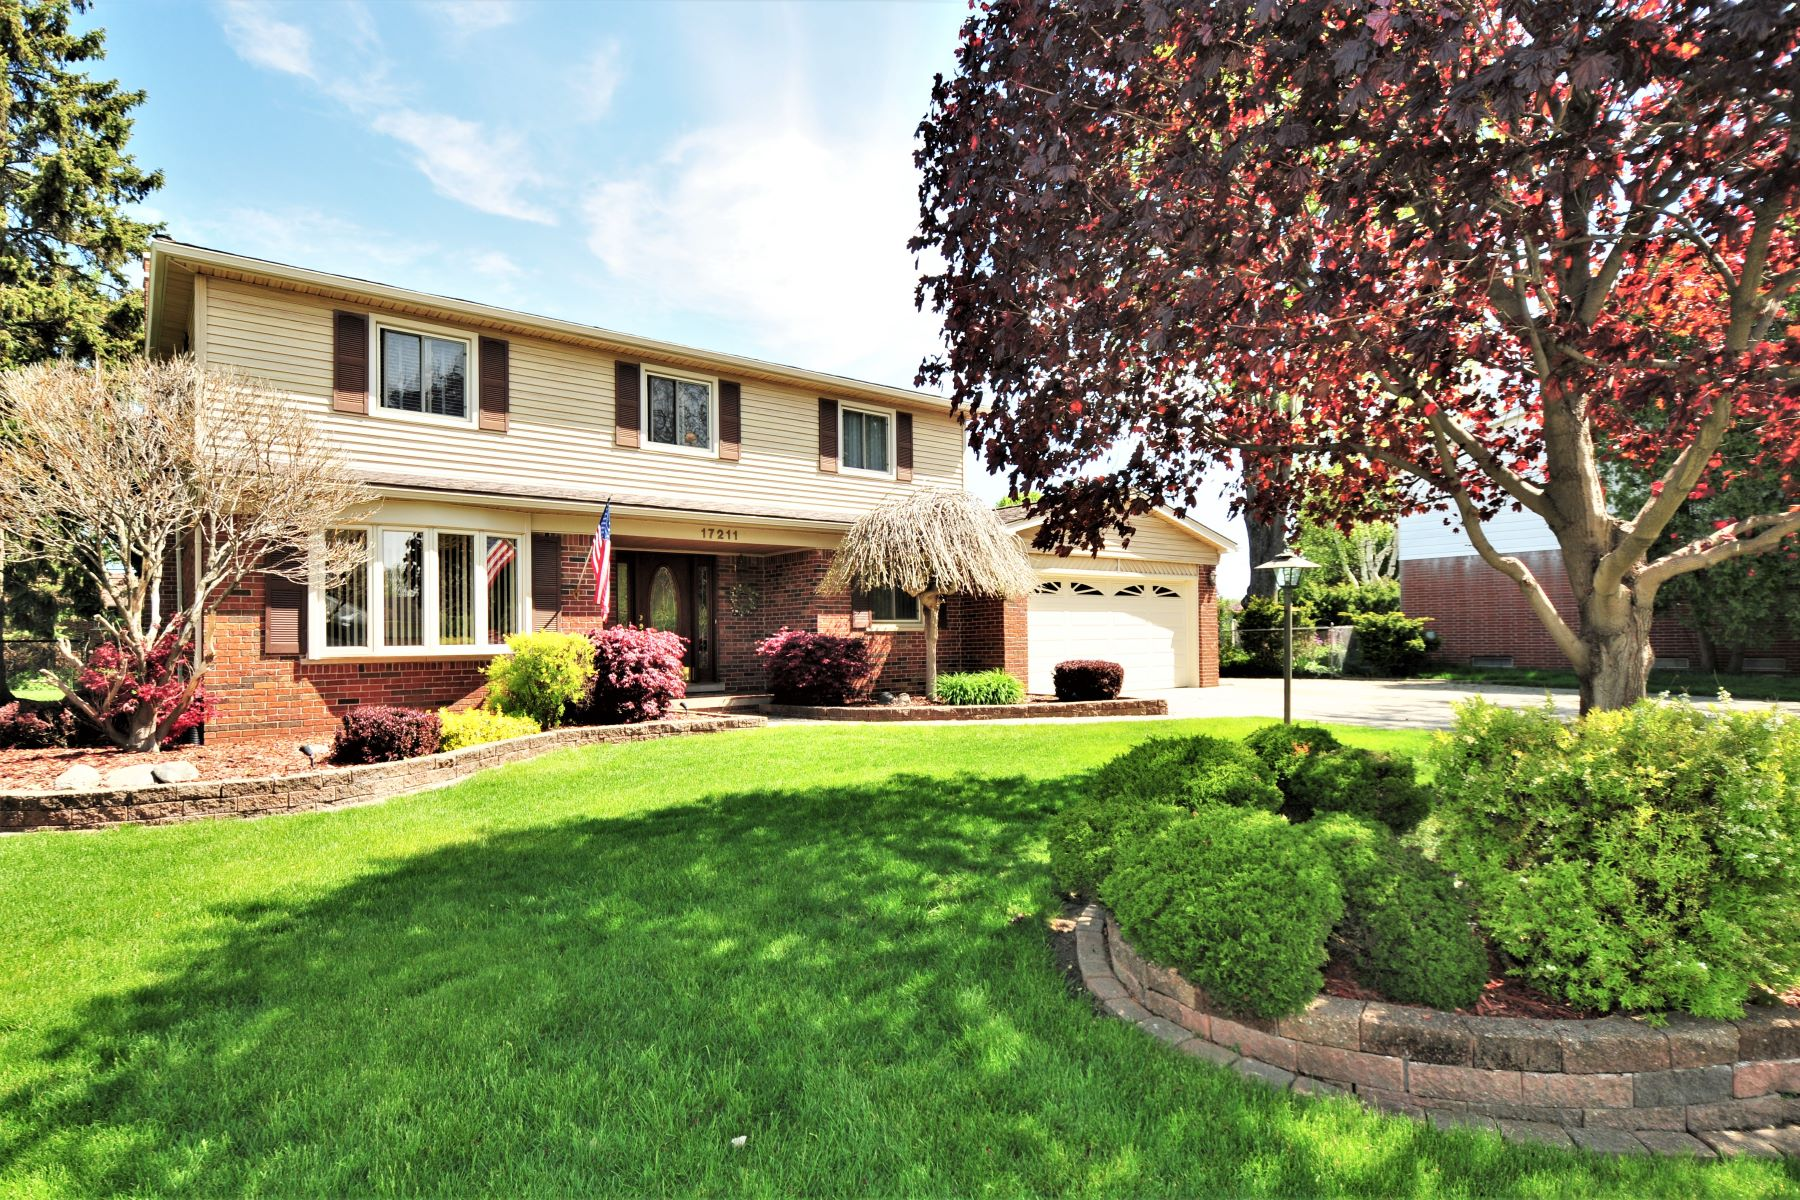 Single Family Homes for Sale at Clinton Twp 17211 Tremlett Clinton Township, Michigan 48035 United States